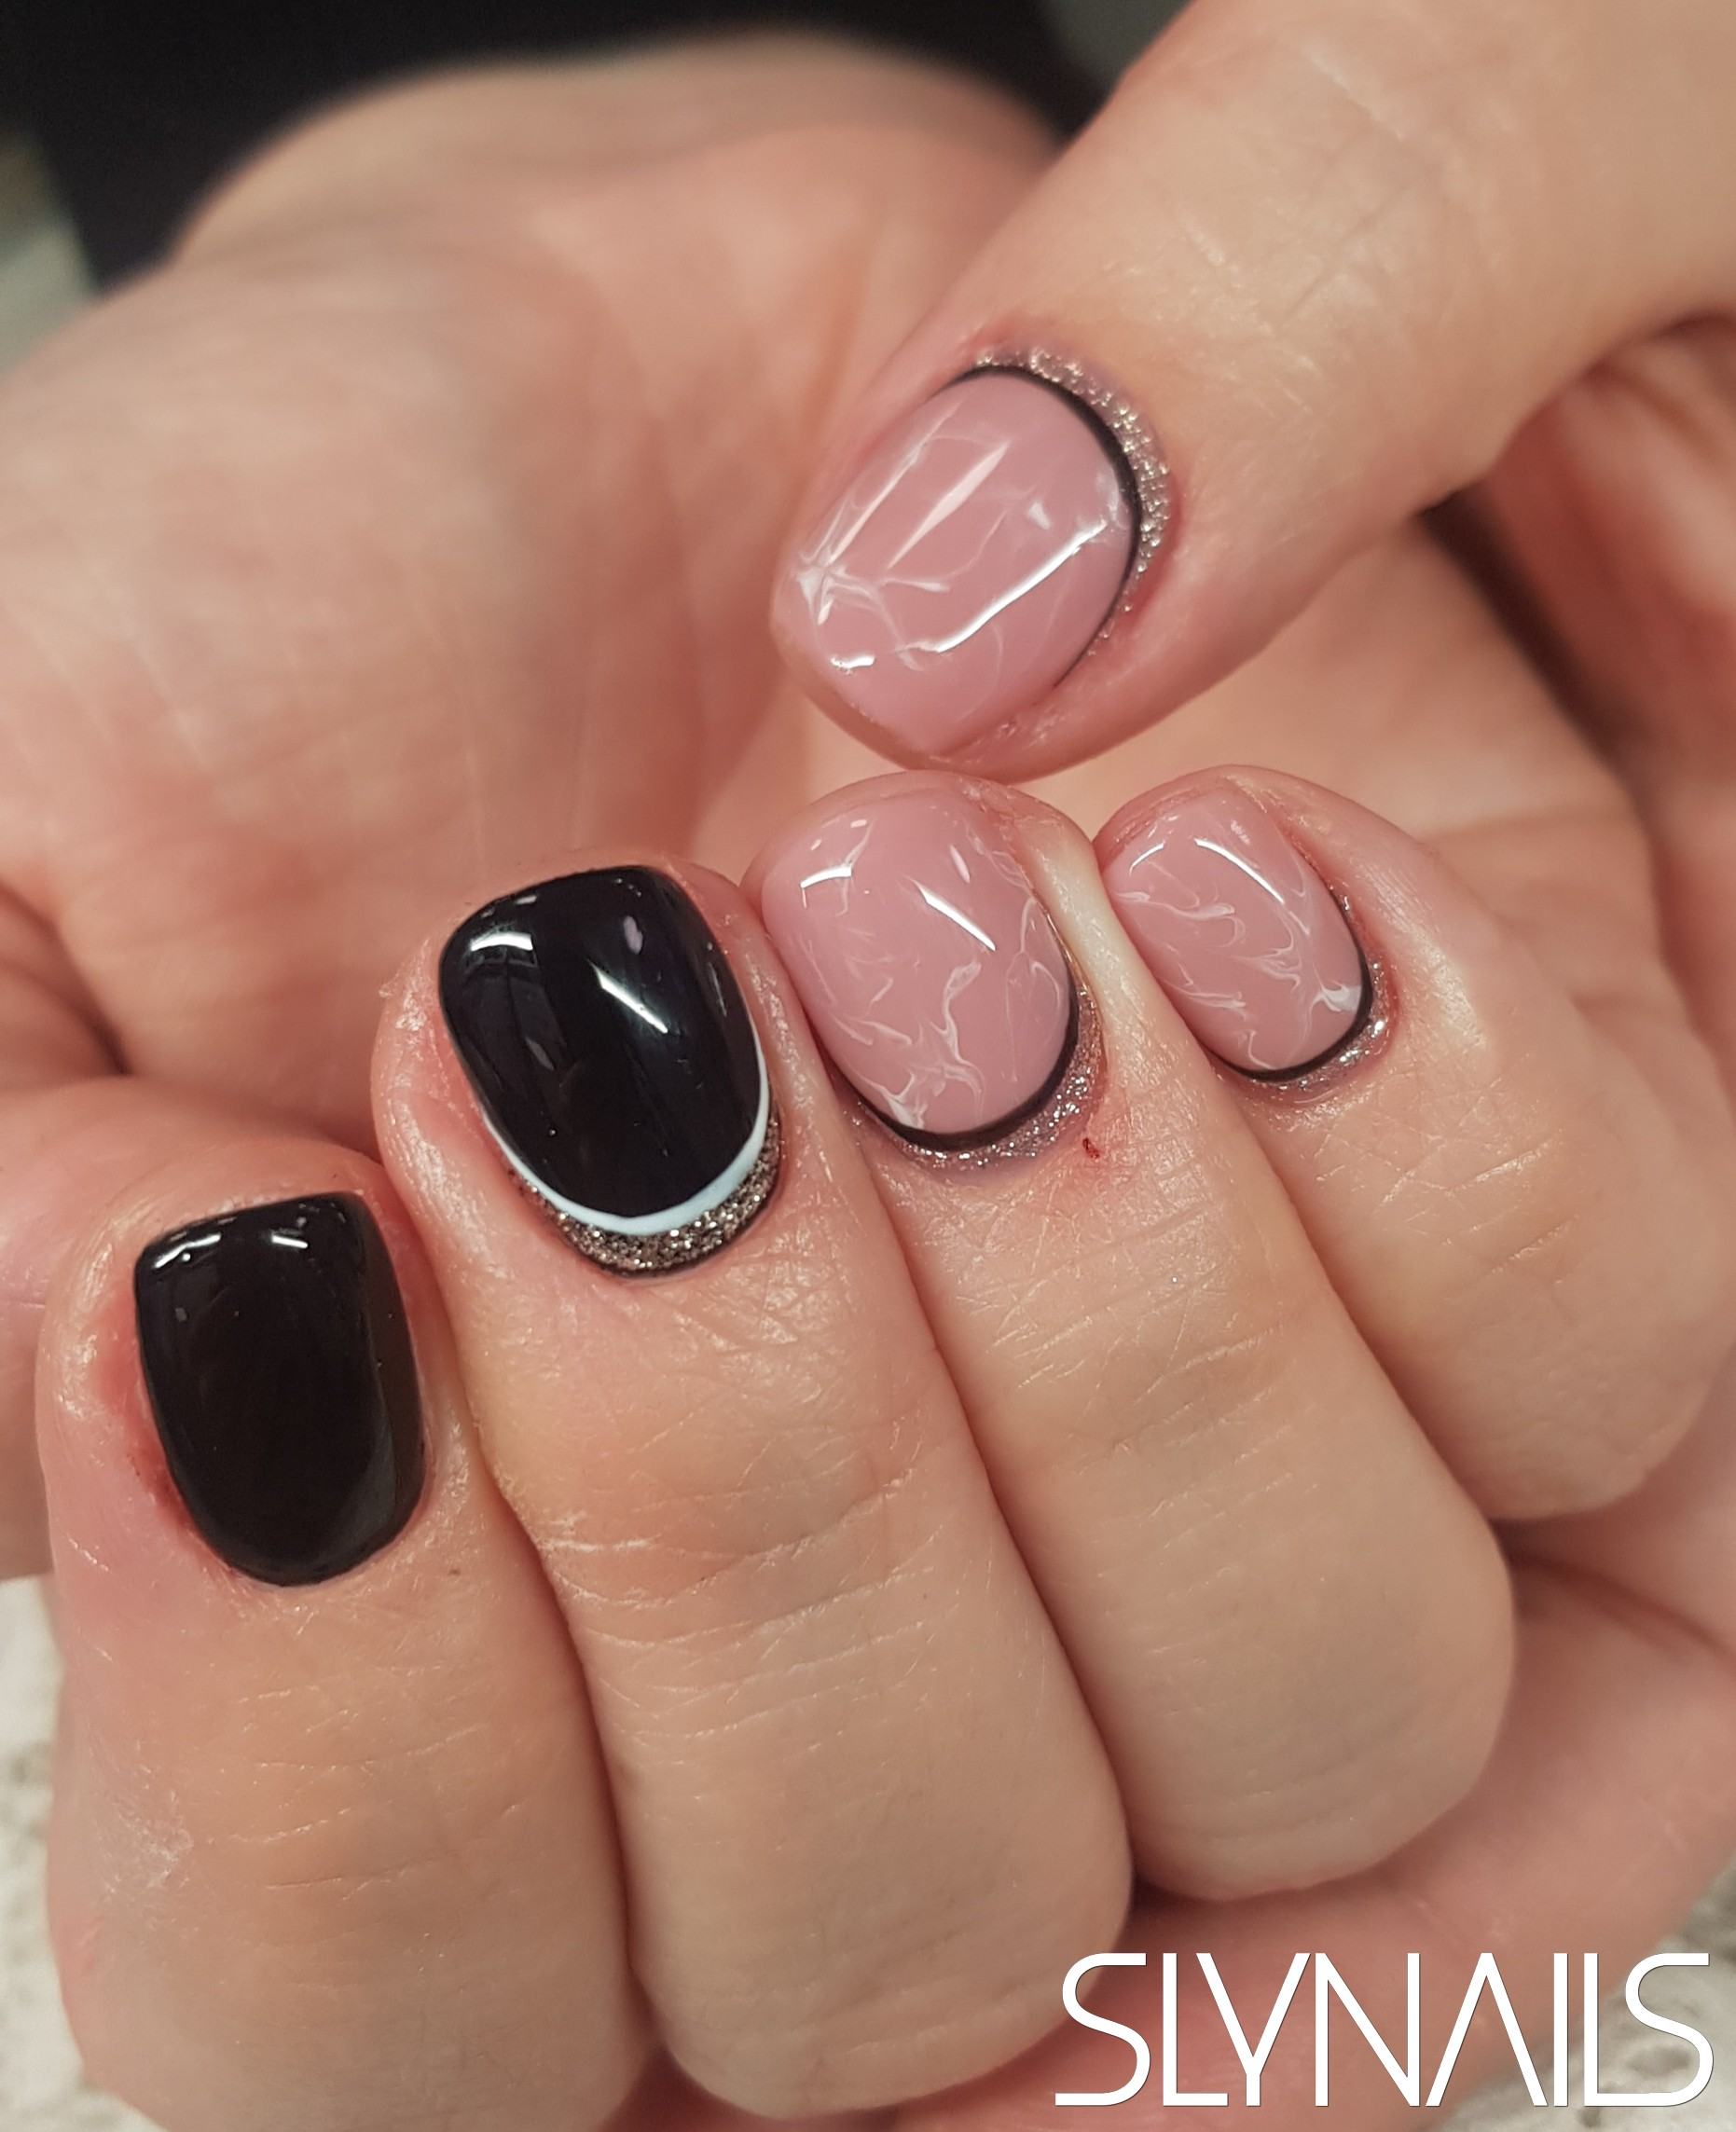 Gel-lac on toes, Black, Art gel decorations, Marble effect, Nude, One color